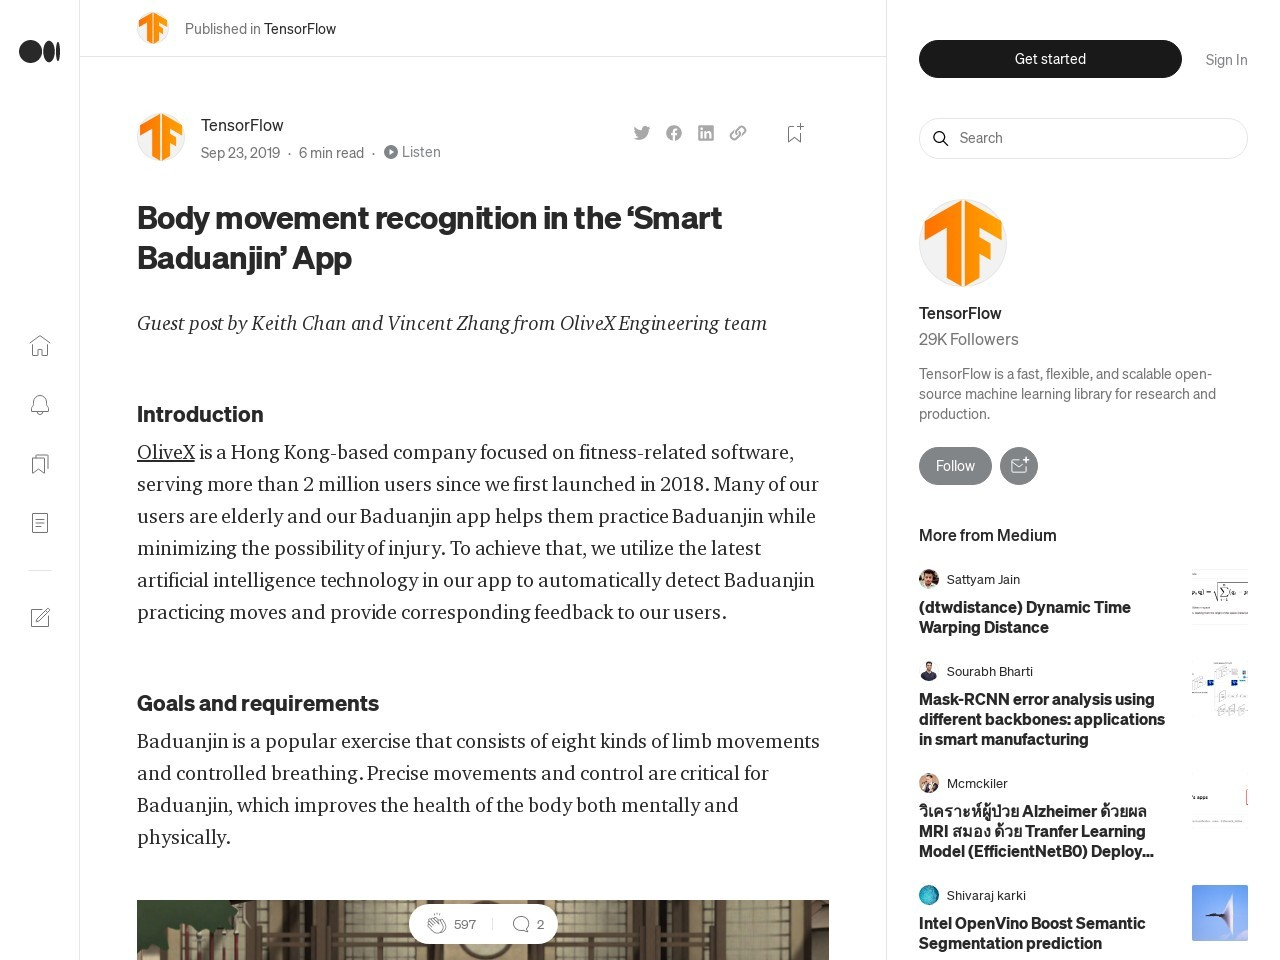 Body movement recognition in the 'Smart Baduanjin' App